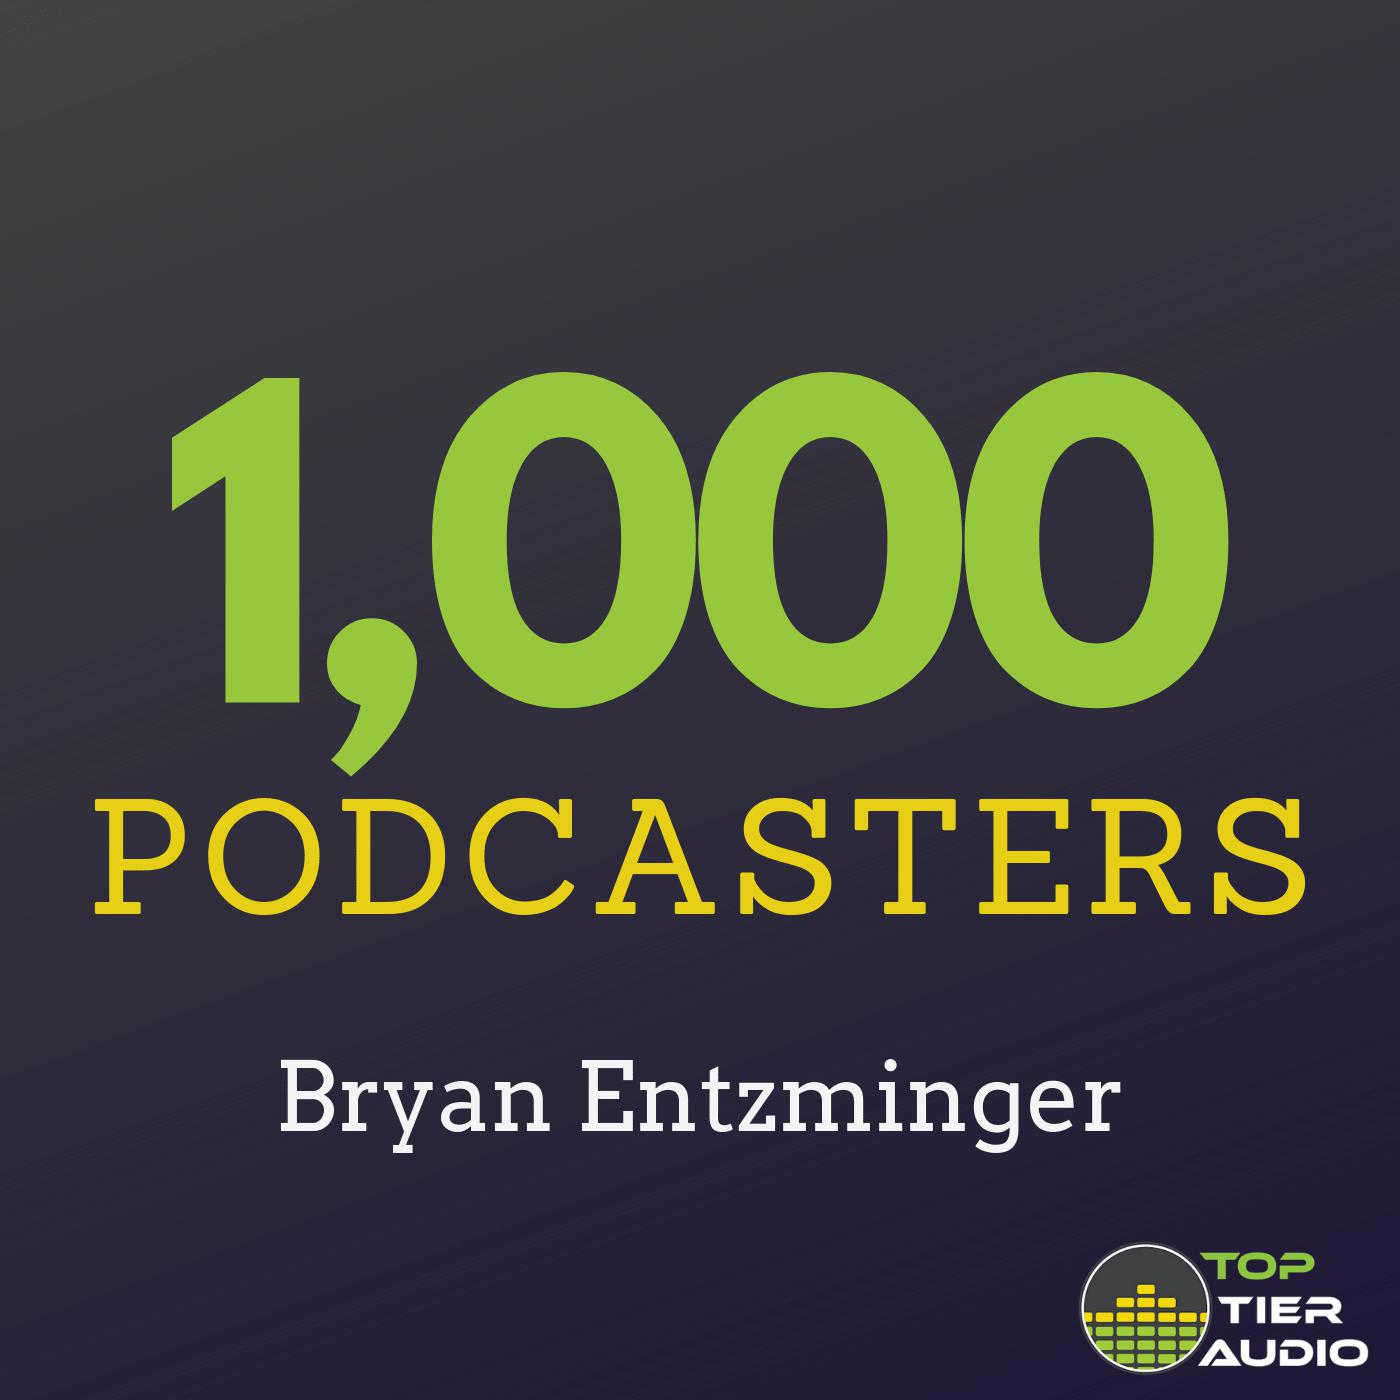 What will you do with your podcast in 2020? - 1KP0091